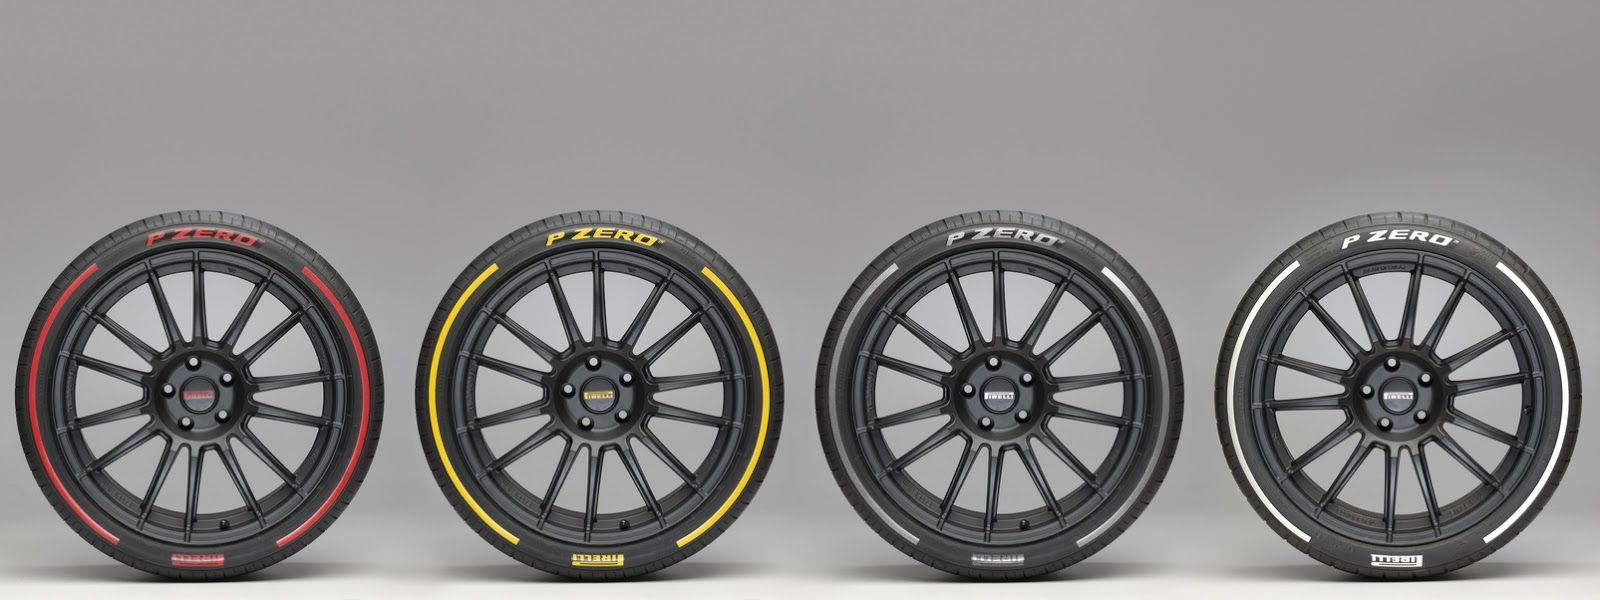 Colored Pirelli Tires And Sensor Tech Go To Geneva Colored Pirelli Tires And Sensor Tech Are Among The Premieres Brought To Geneva Motor Show Set To Improve Th